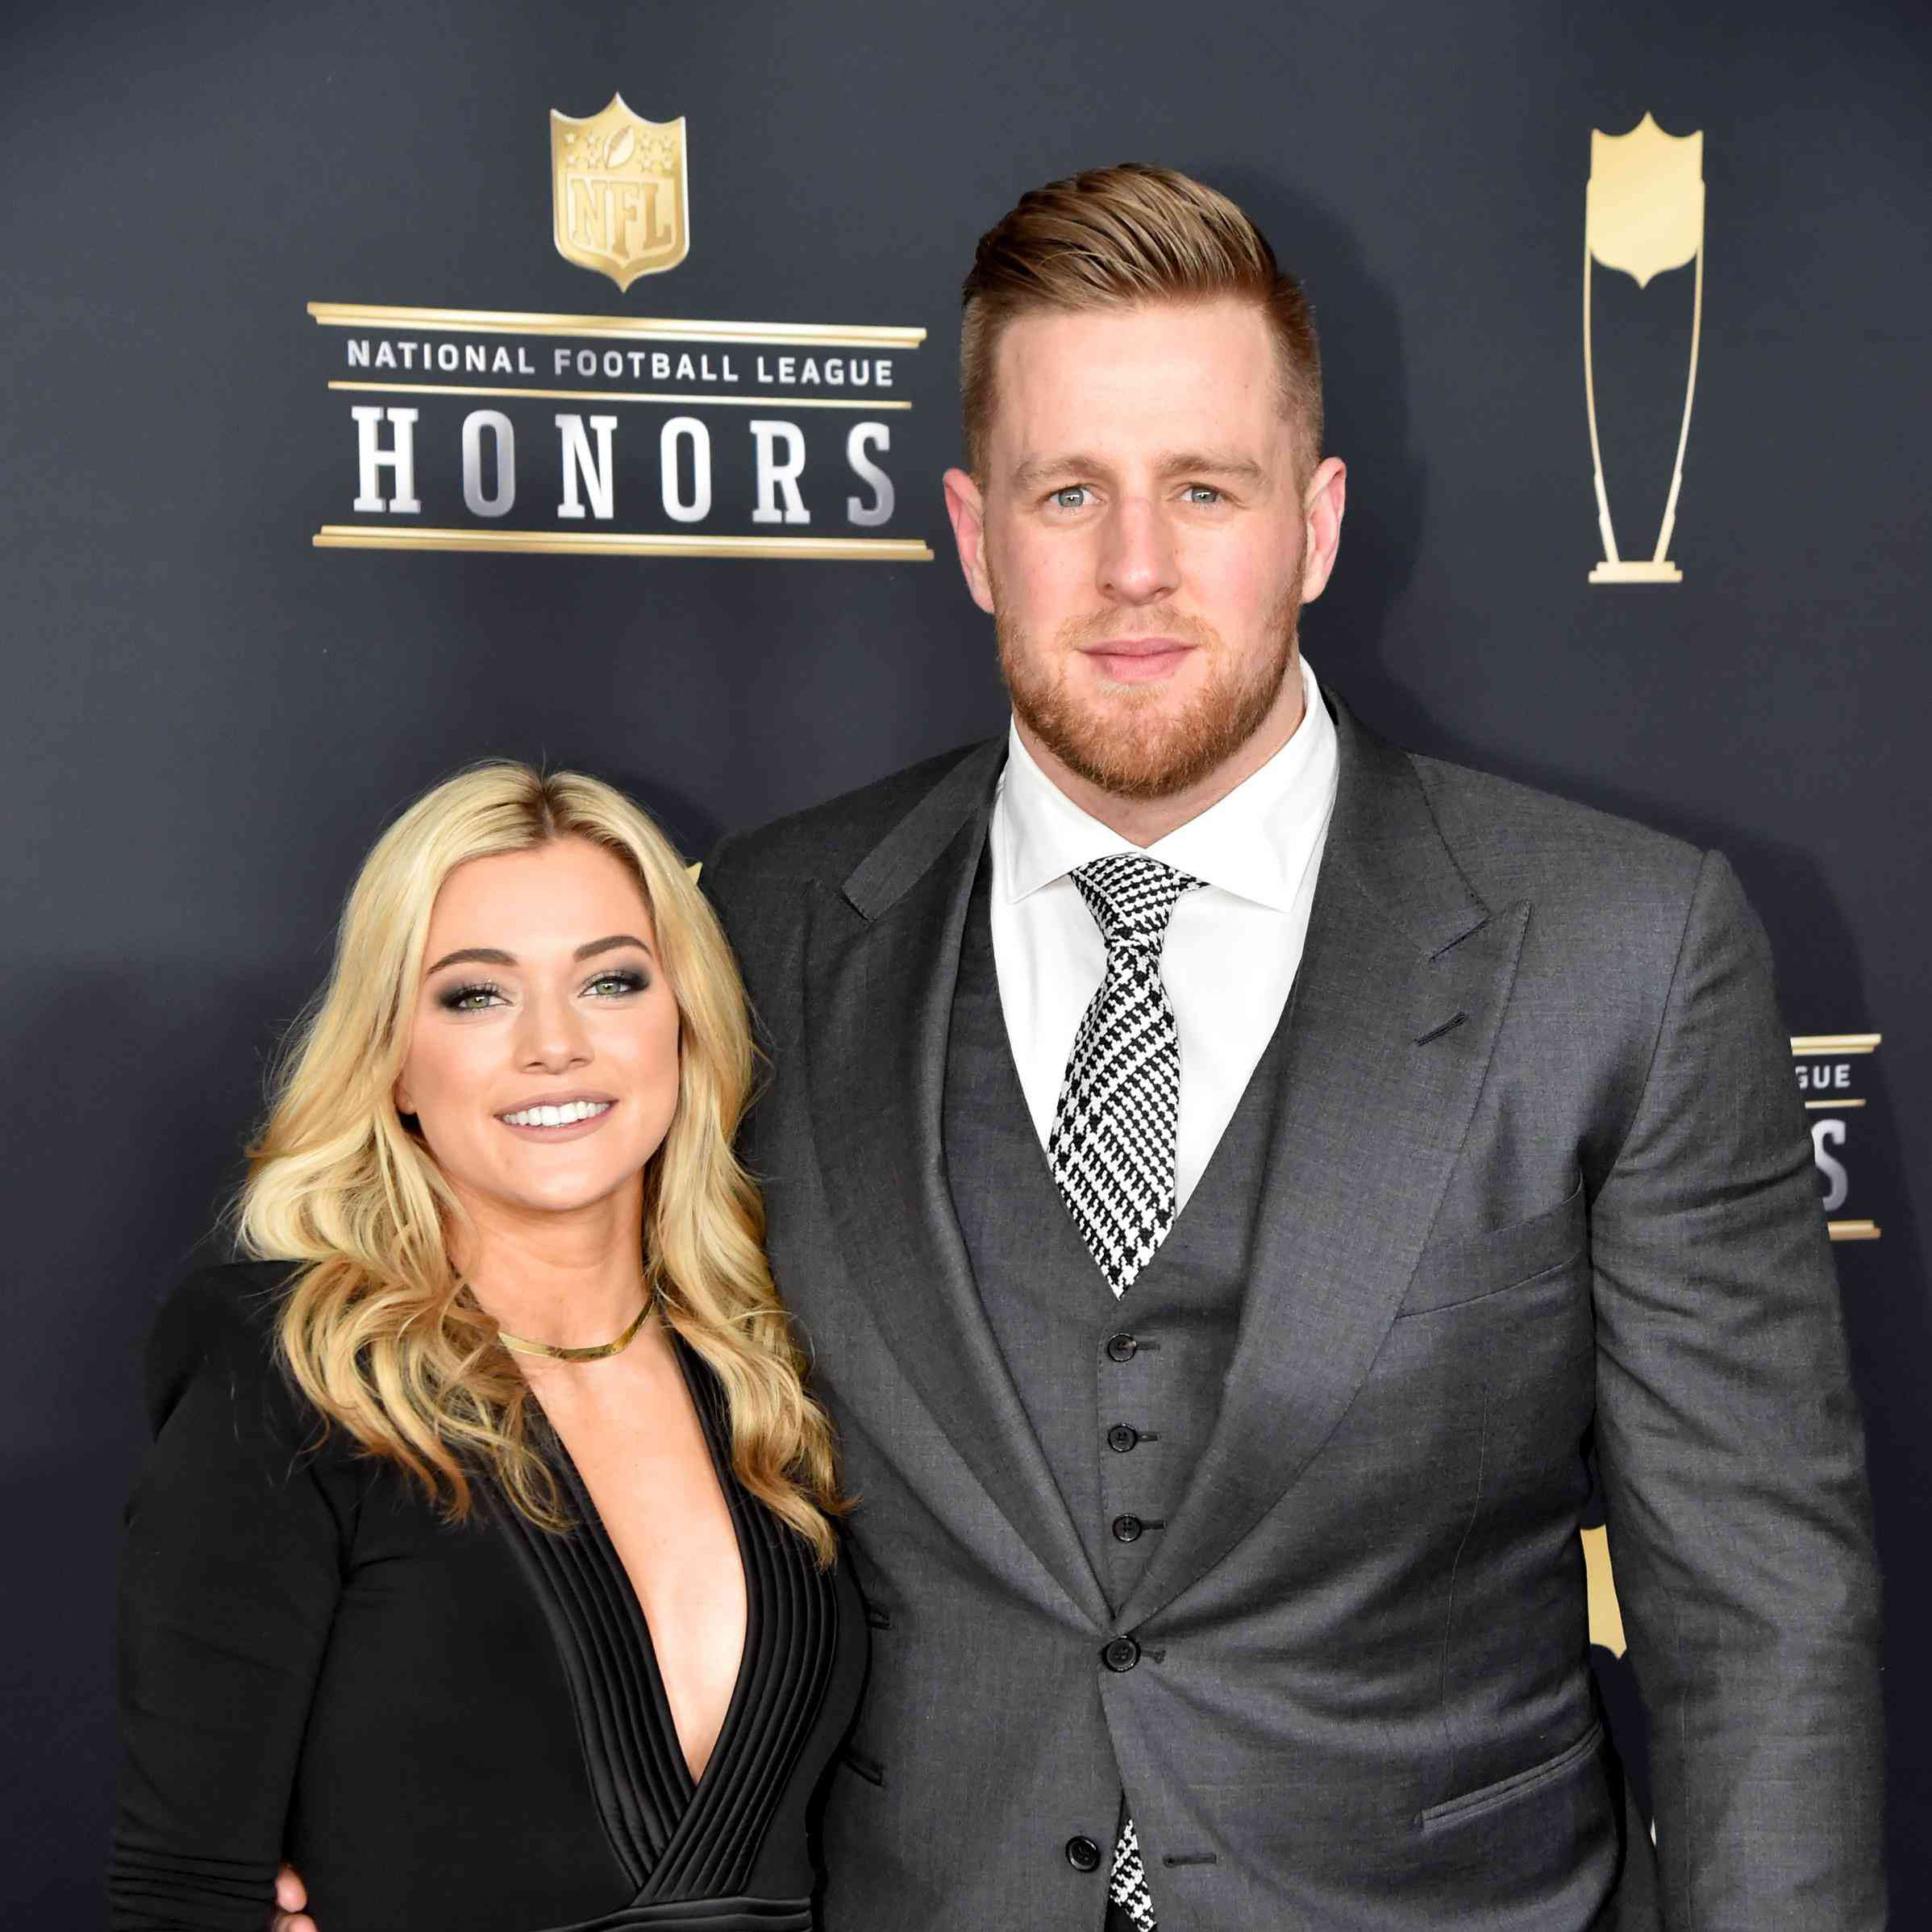 Jj Watt Wedding Pictures: Houston Texans Star J.J. Watt Is Engaged To Houston Dash